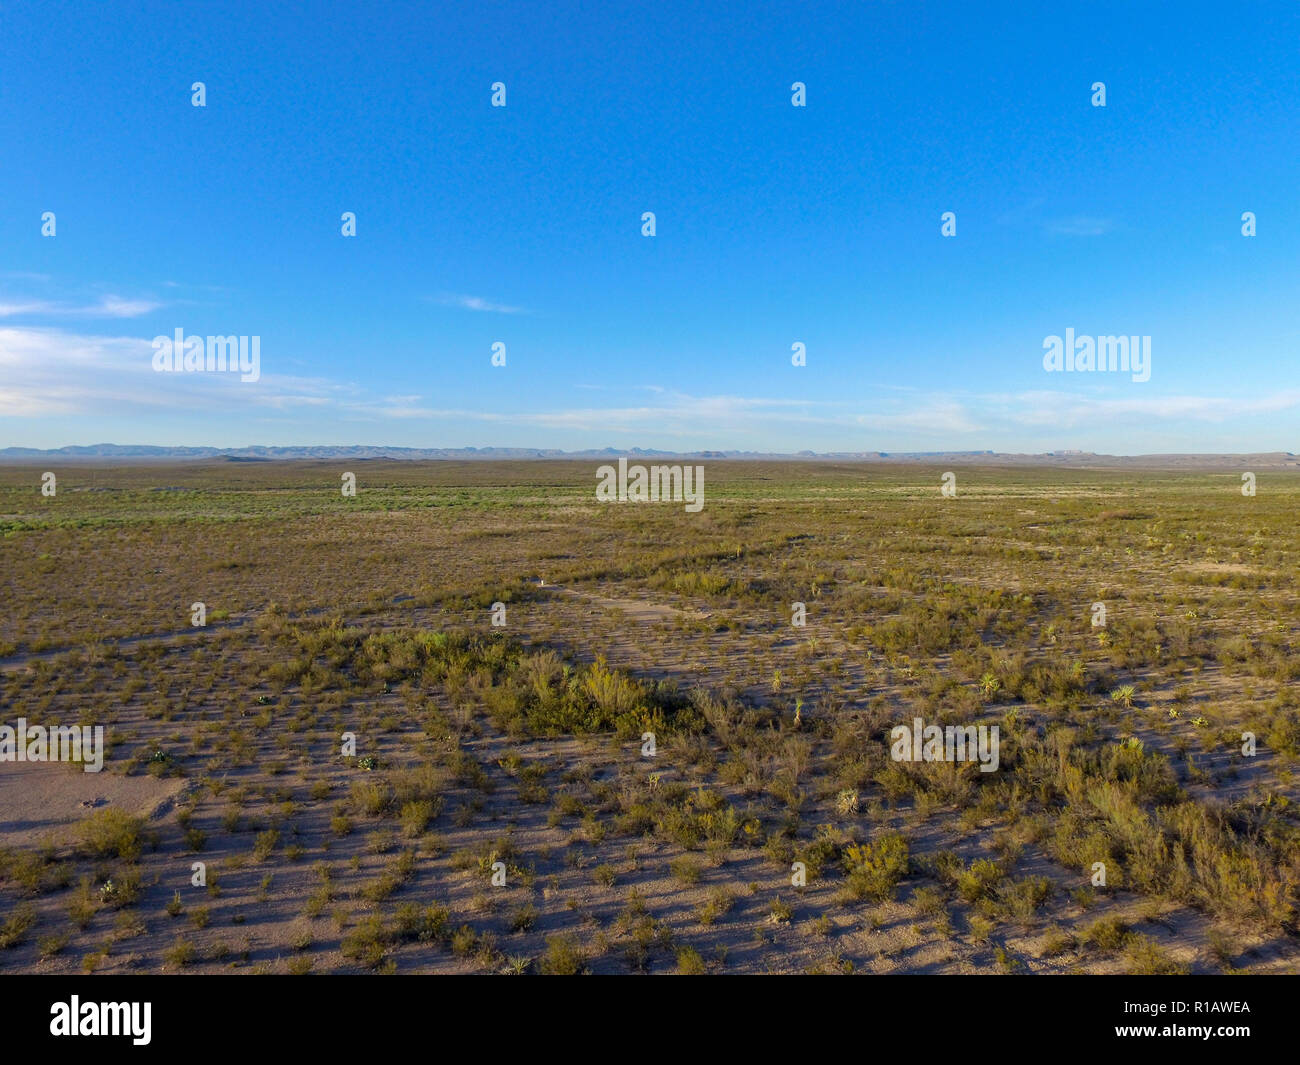 Aerial photograph of the southwest Texas desert landscape outside of Big Bend National Park, near the U.S. and Mexico International Border. - Stock Image